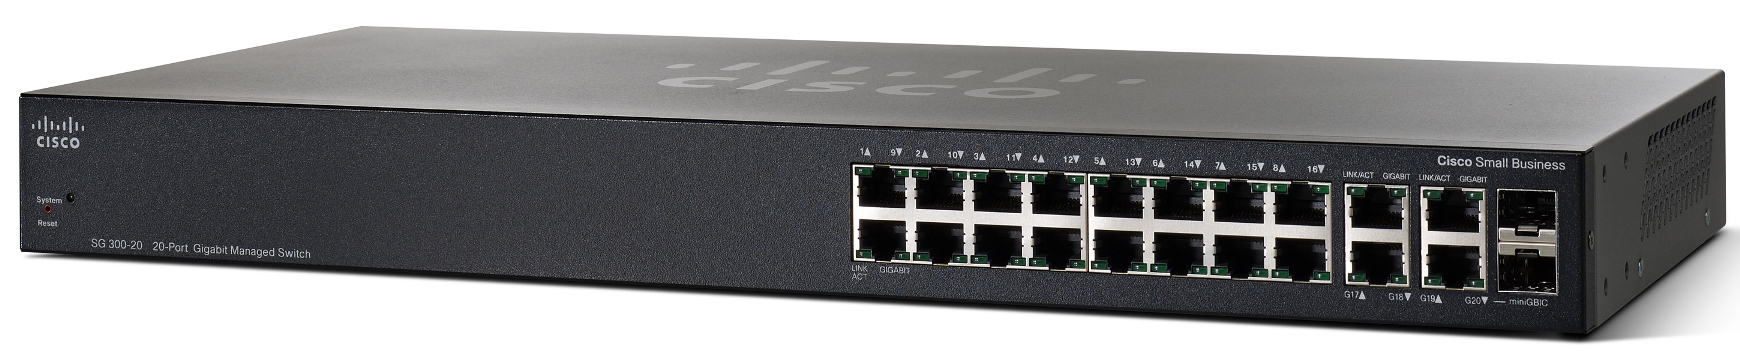 Cisco SRW2016-K9 SG300-20 20-port Gigabit Managed Switch